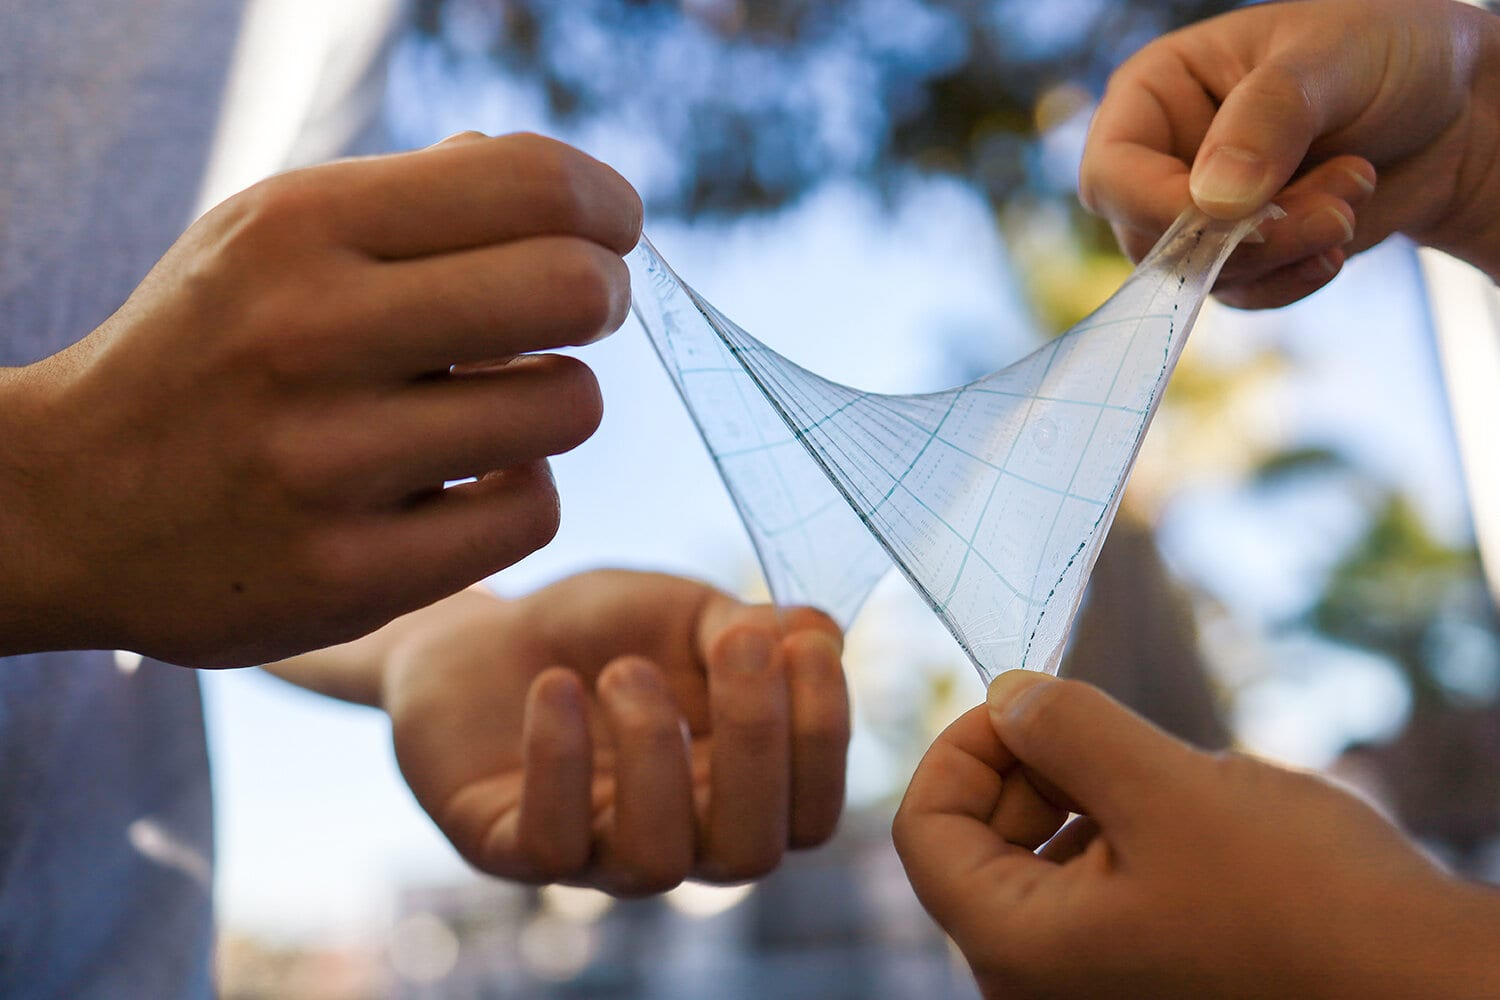 Lab mates in the Bao Research Group at Stanford demonstrate the flexibility and stretchability of their artificial skin made using their newly created printing method. (Image credit: Yuqing Zheng)